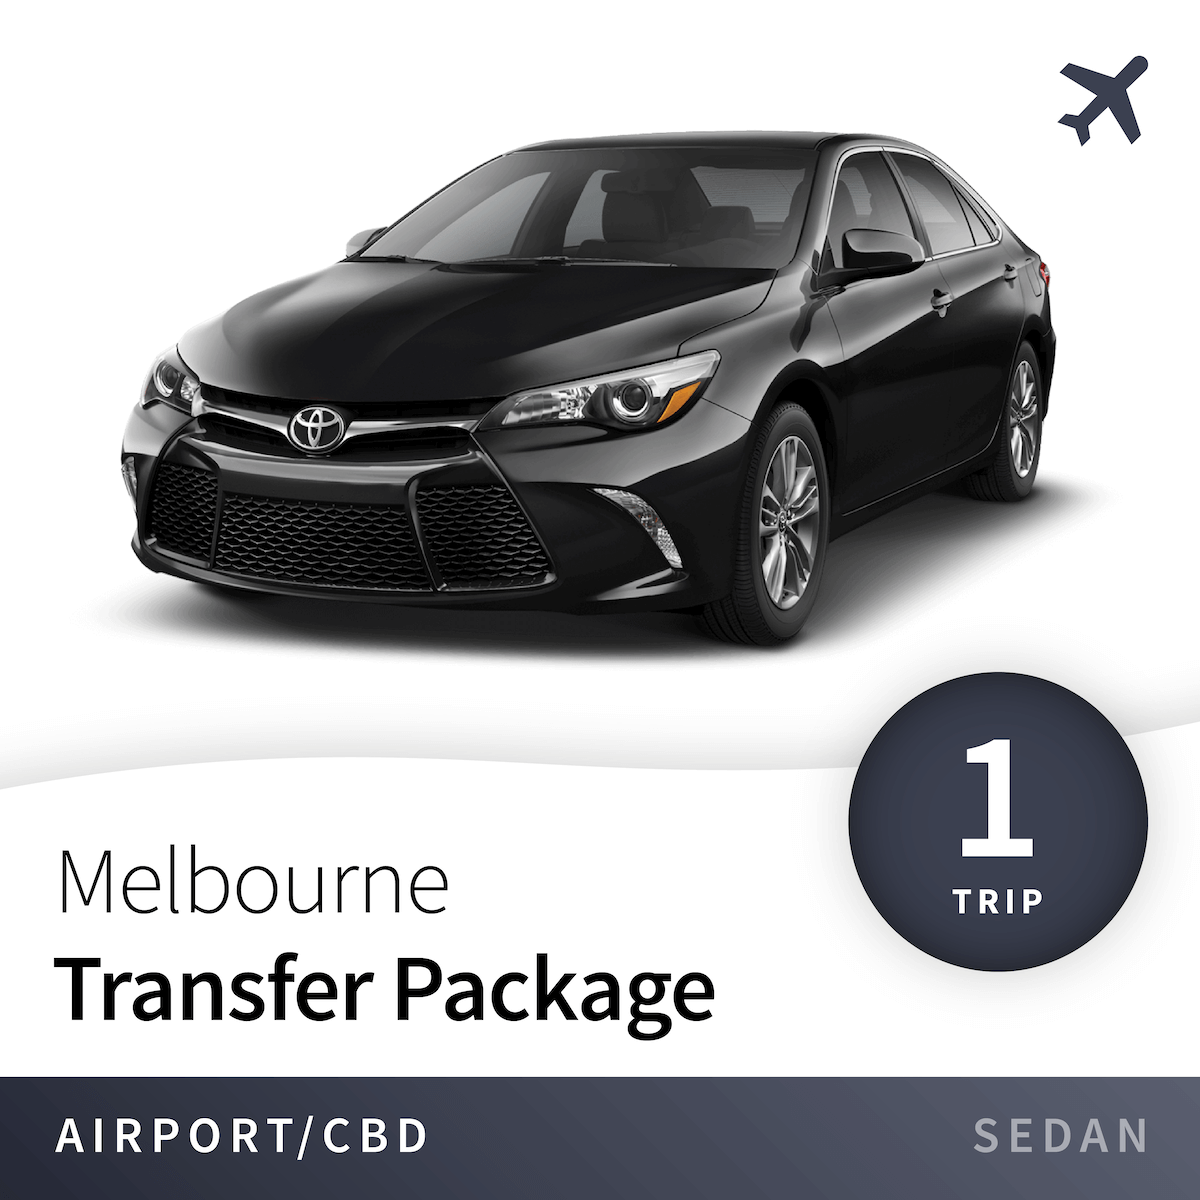 Melbourne Airport Transfer Package - Sedan (1 Trip) 9